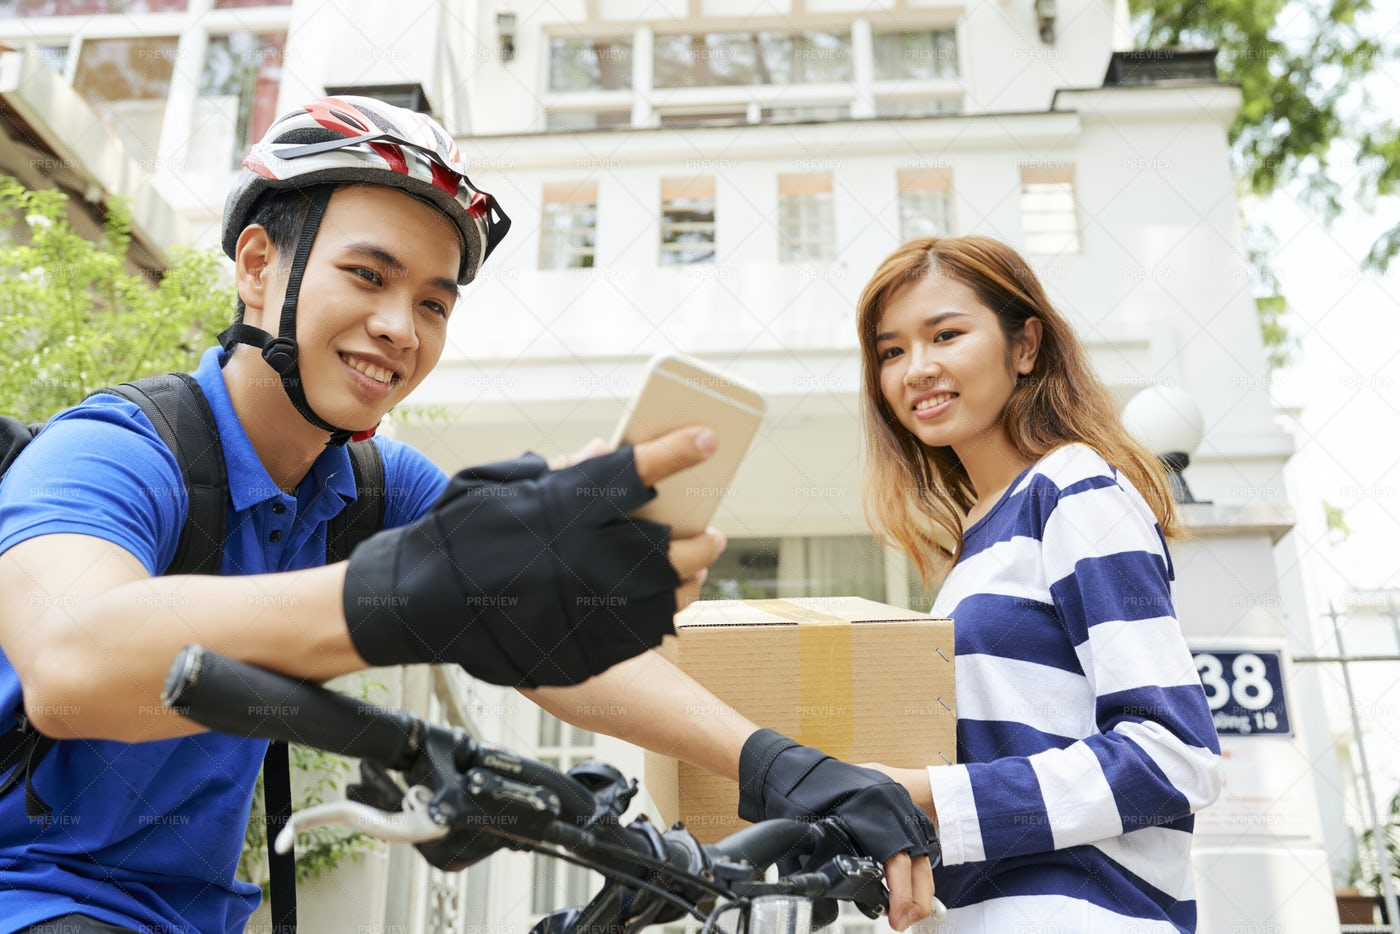 Courier Showing Cost Of Delivery On: Stock Photos